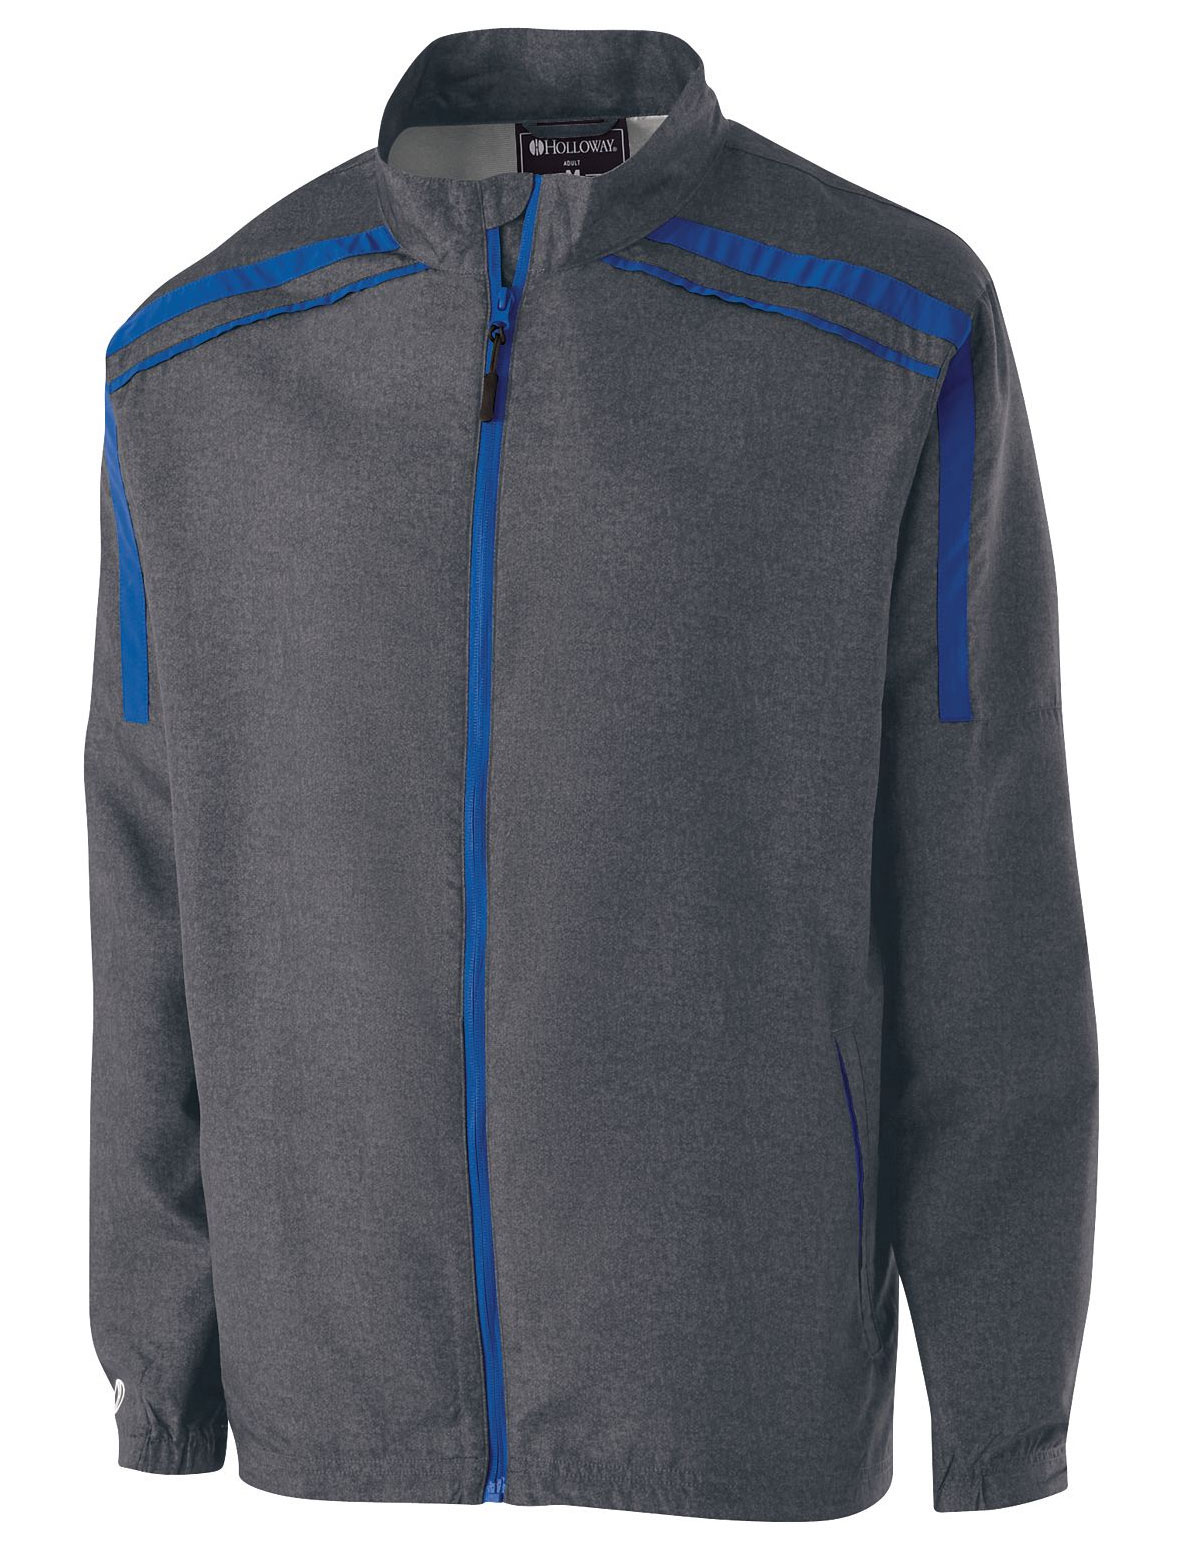 Youth Raider Lightweight Jacket